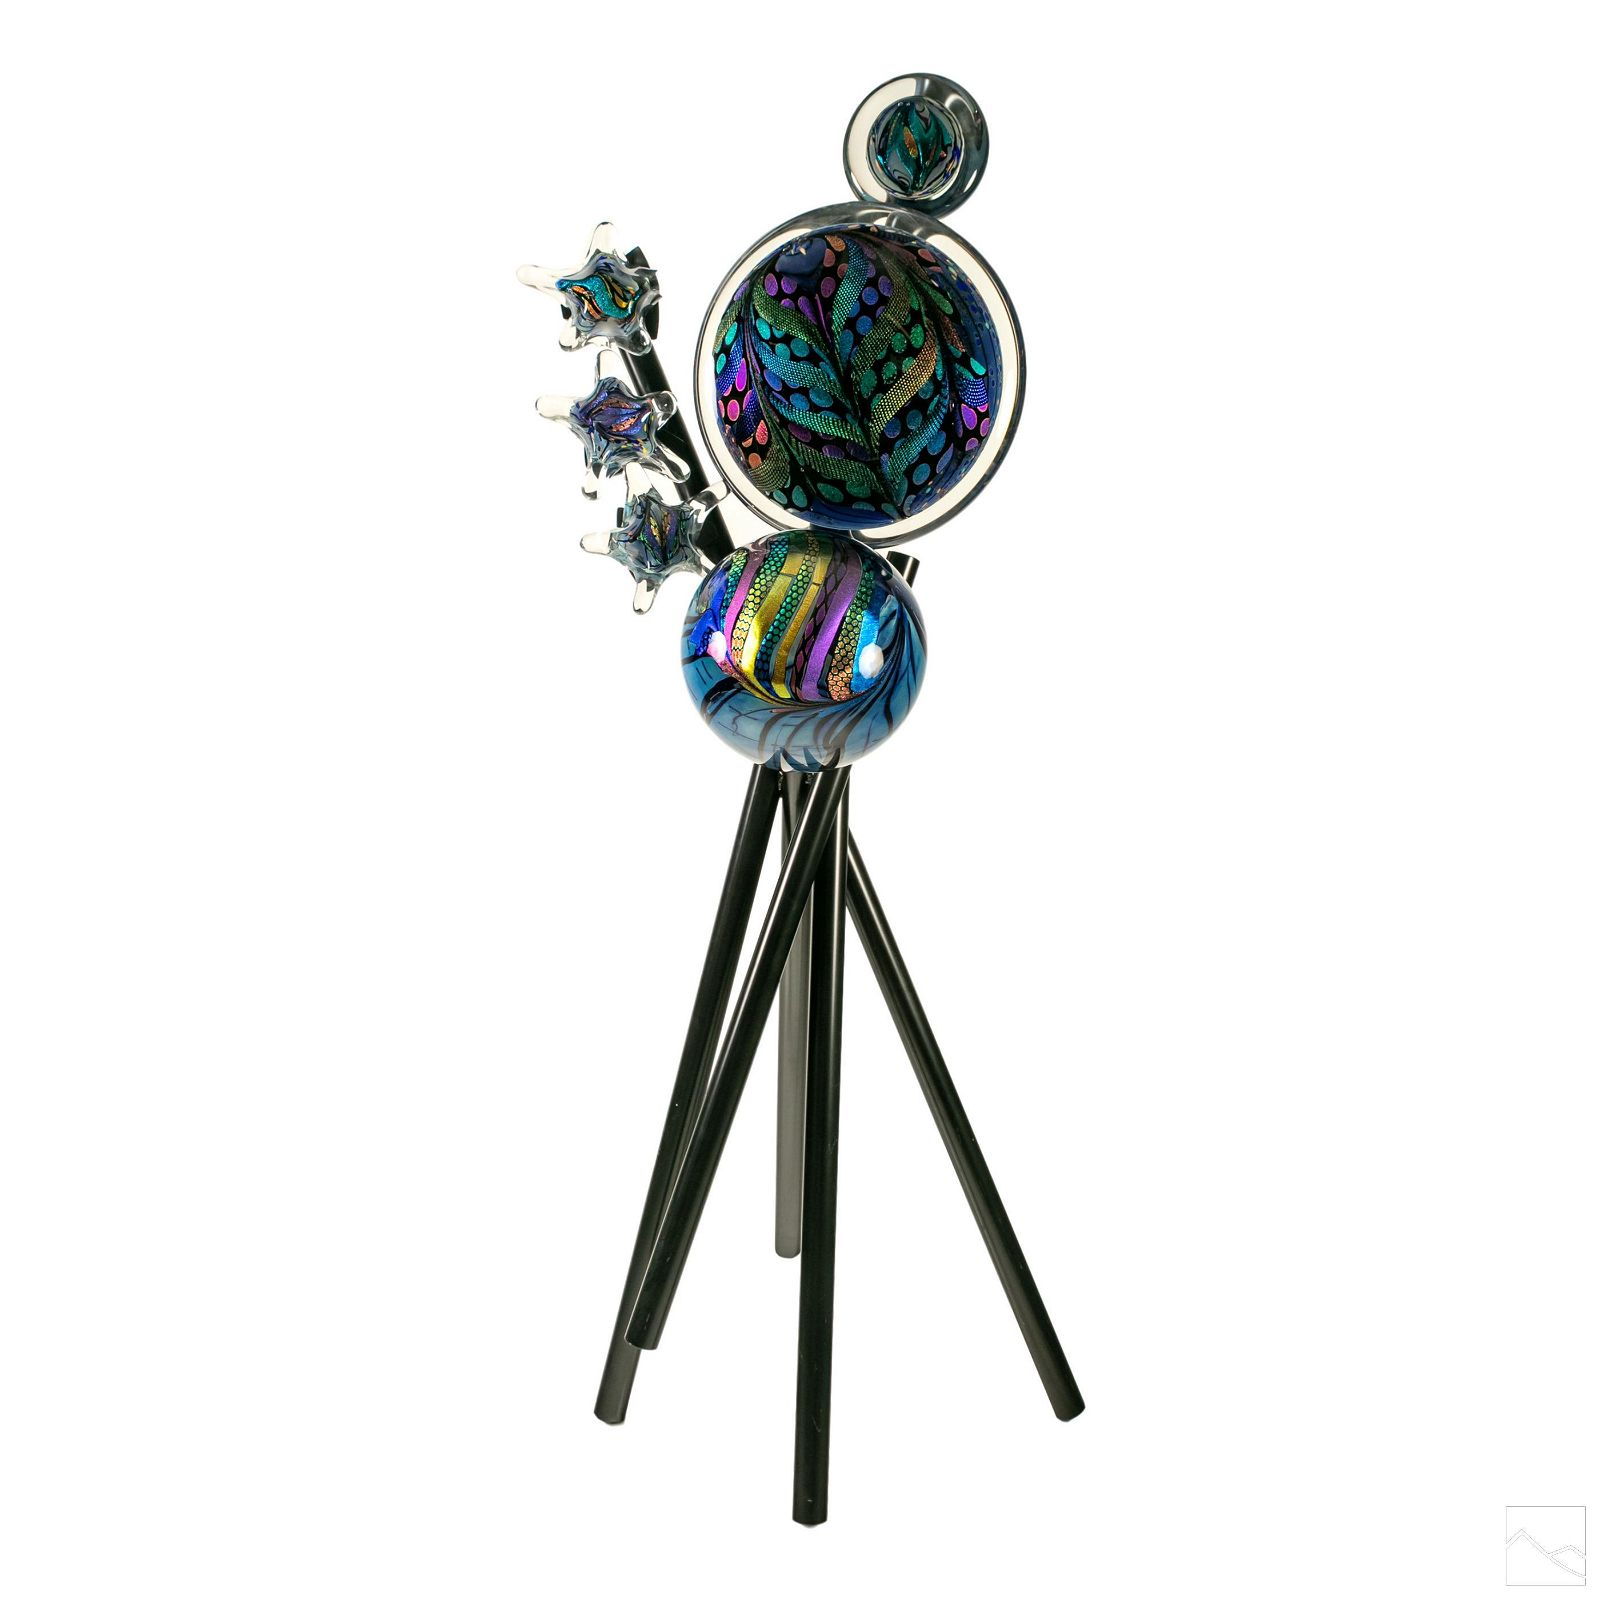 Rollin Karg Modern Abstract Art Glass Sculpture